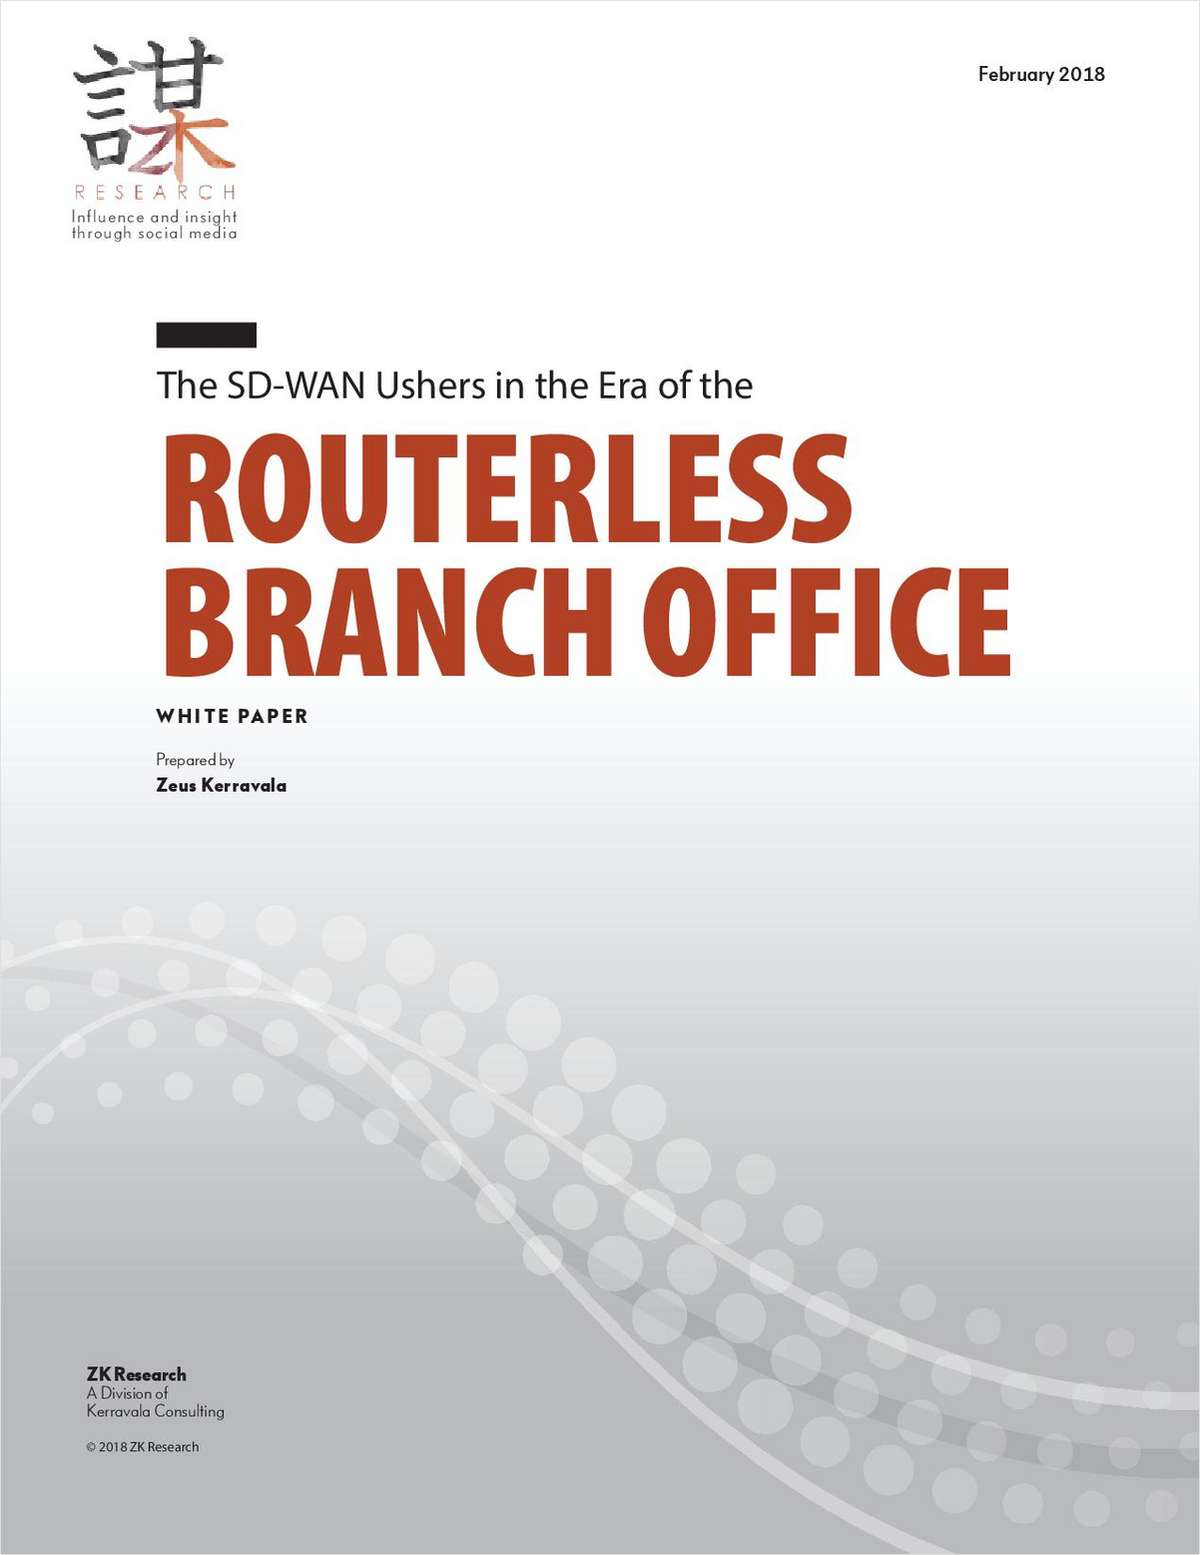 The Routerless Branch Office